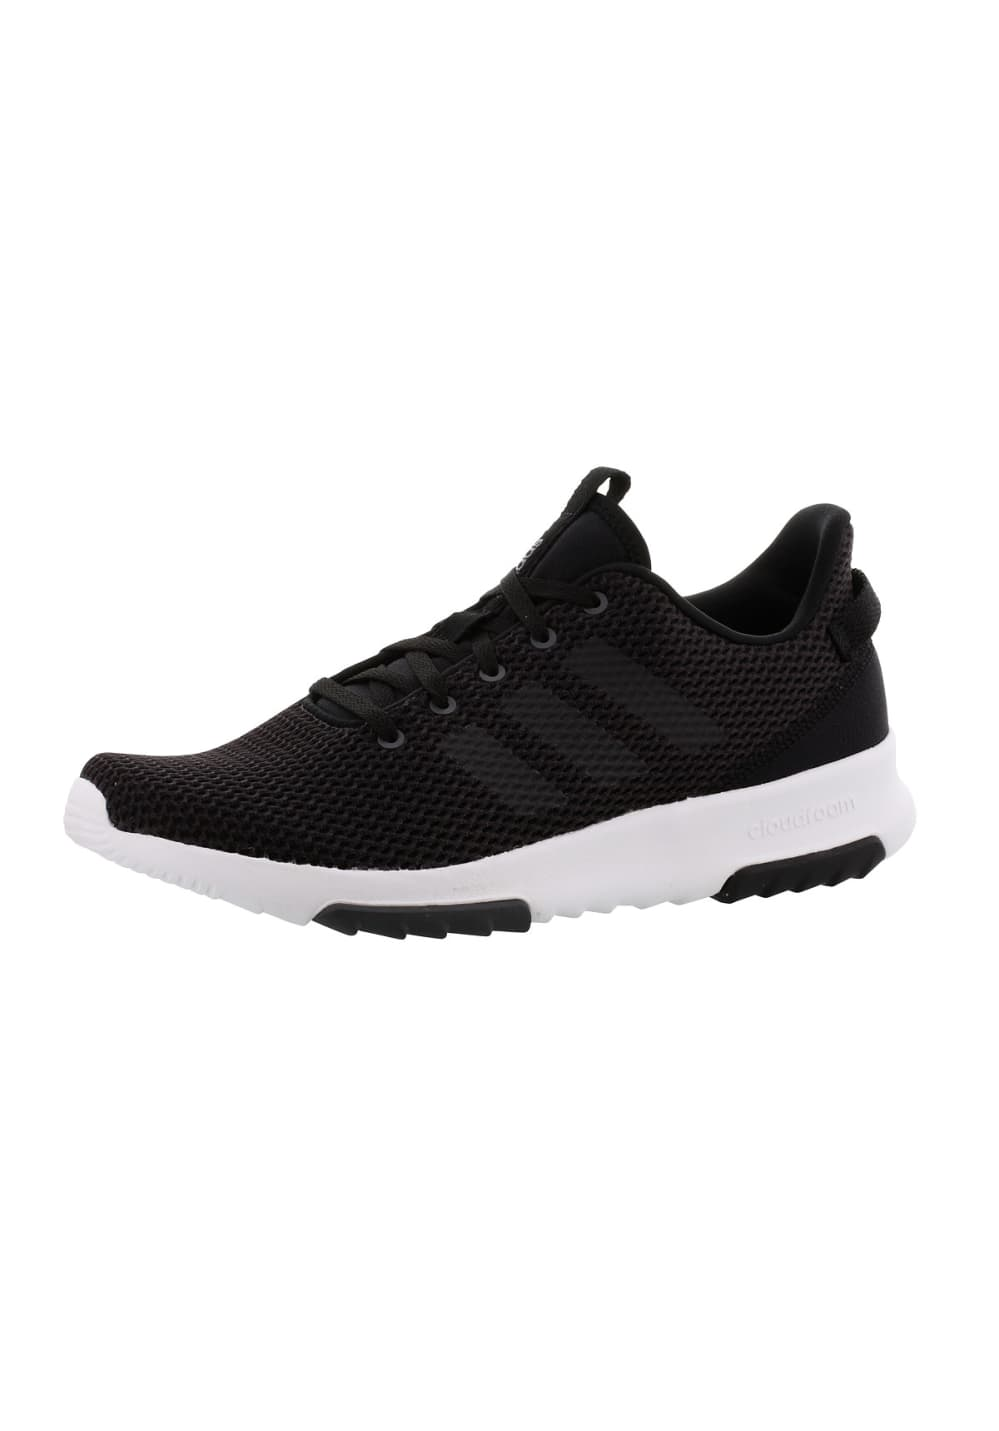 564956bf21 adidas neo Cf Racer Tr - Running shoes for Men - Black | 21RUN